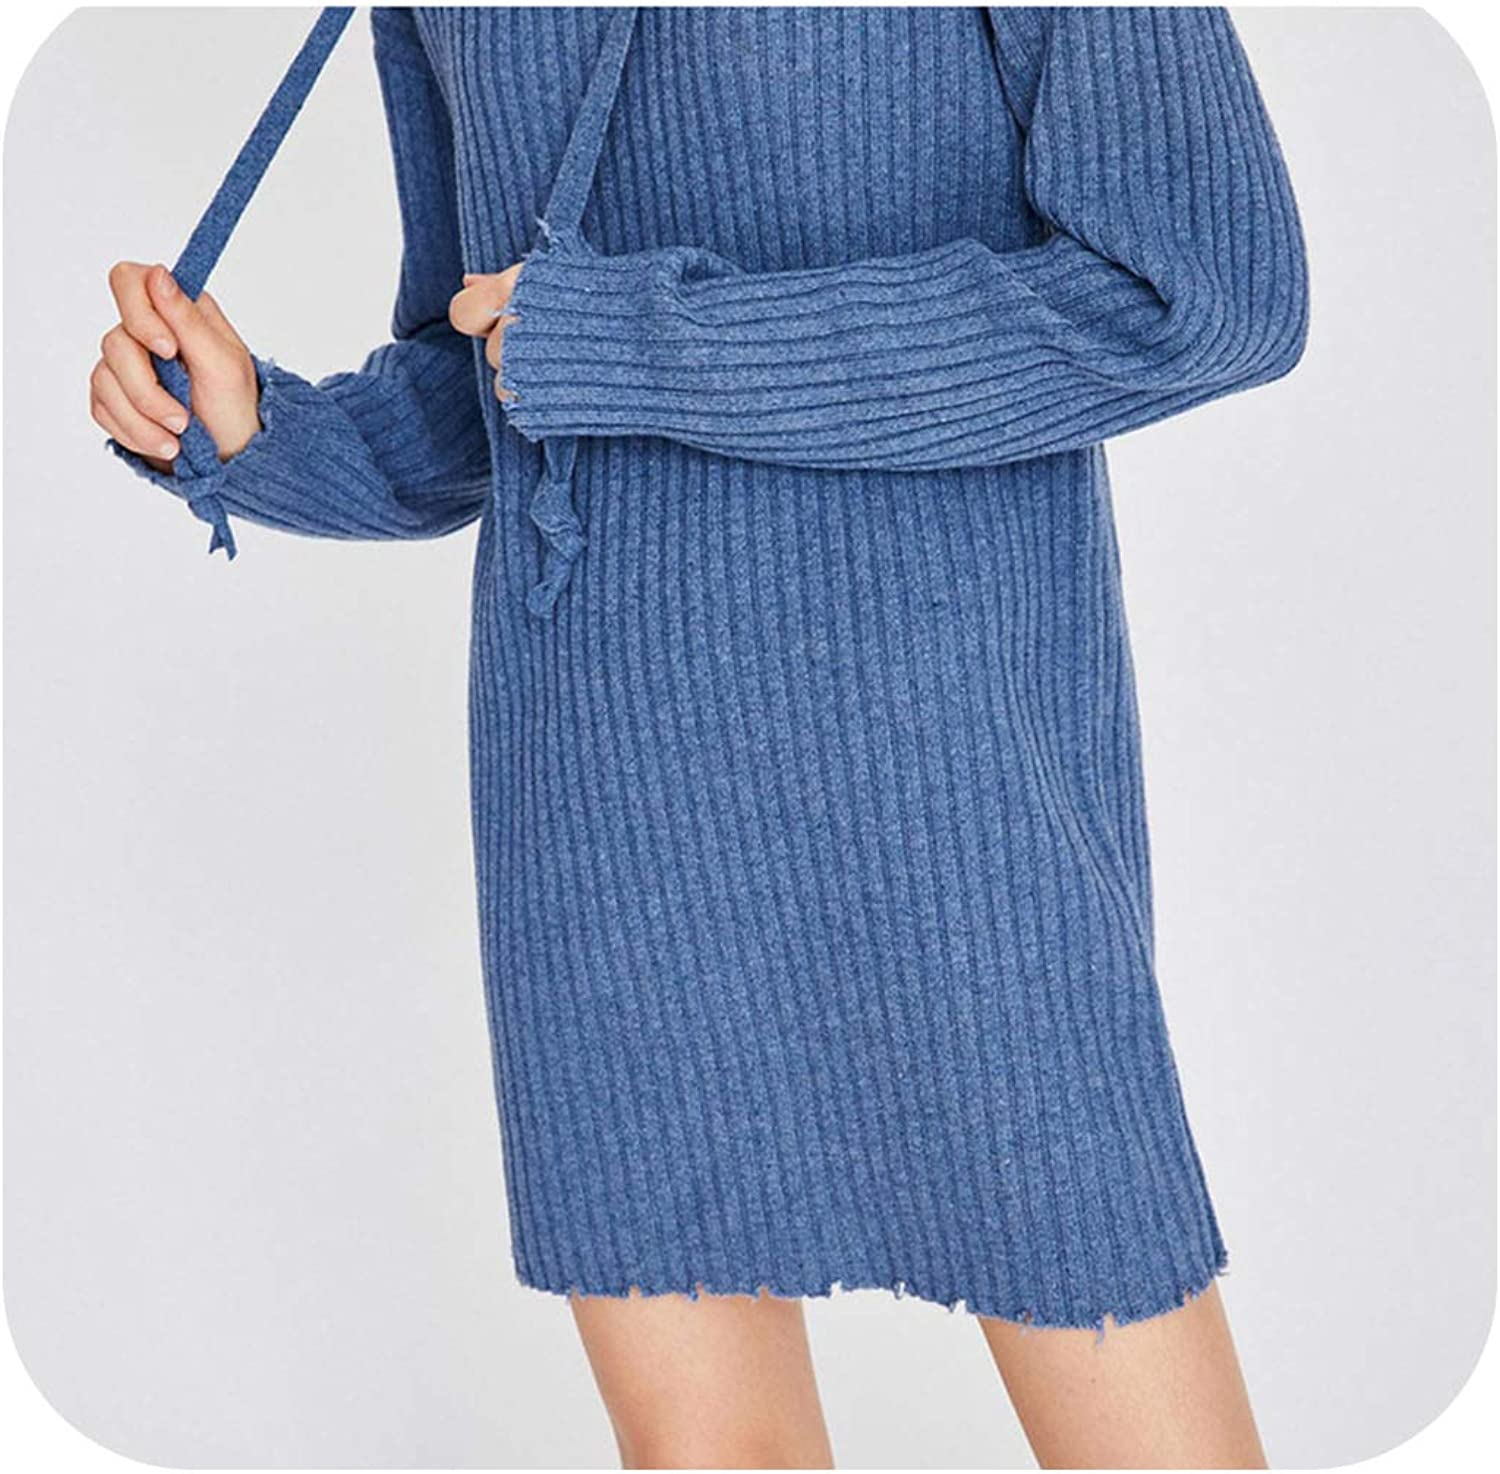 Striped Knitted Dress Solid Hooded Straight Kawaii women